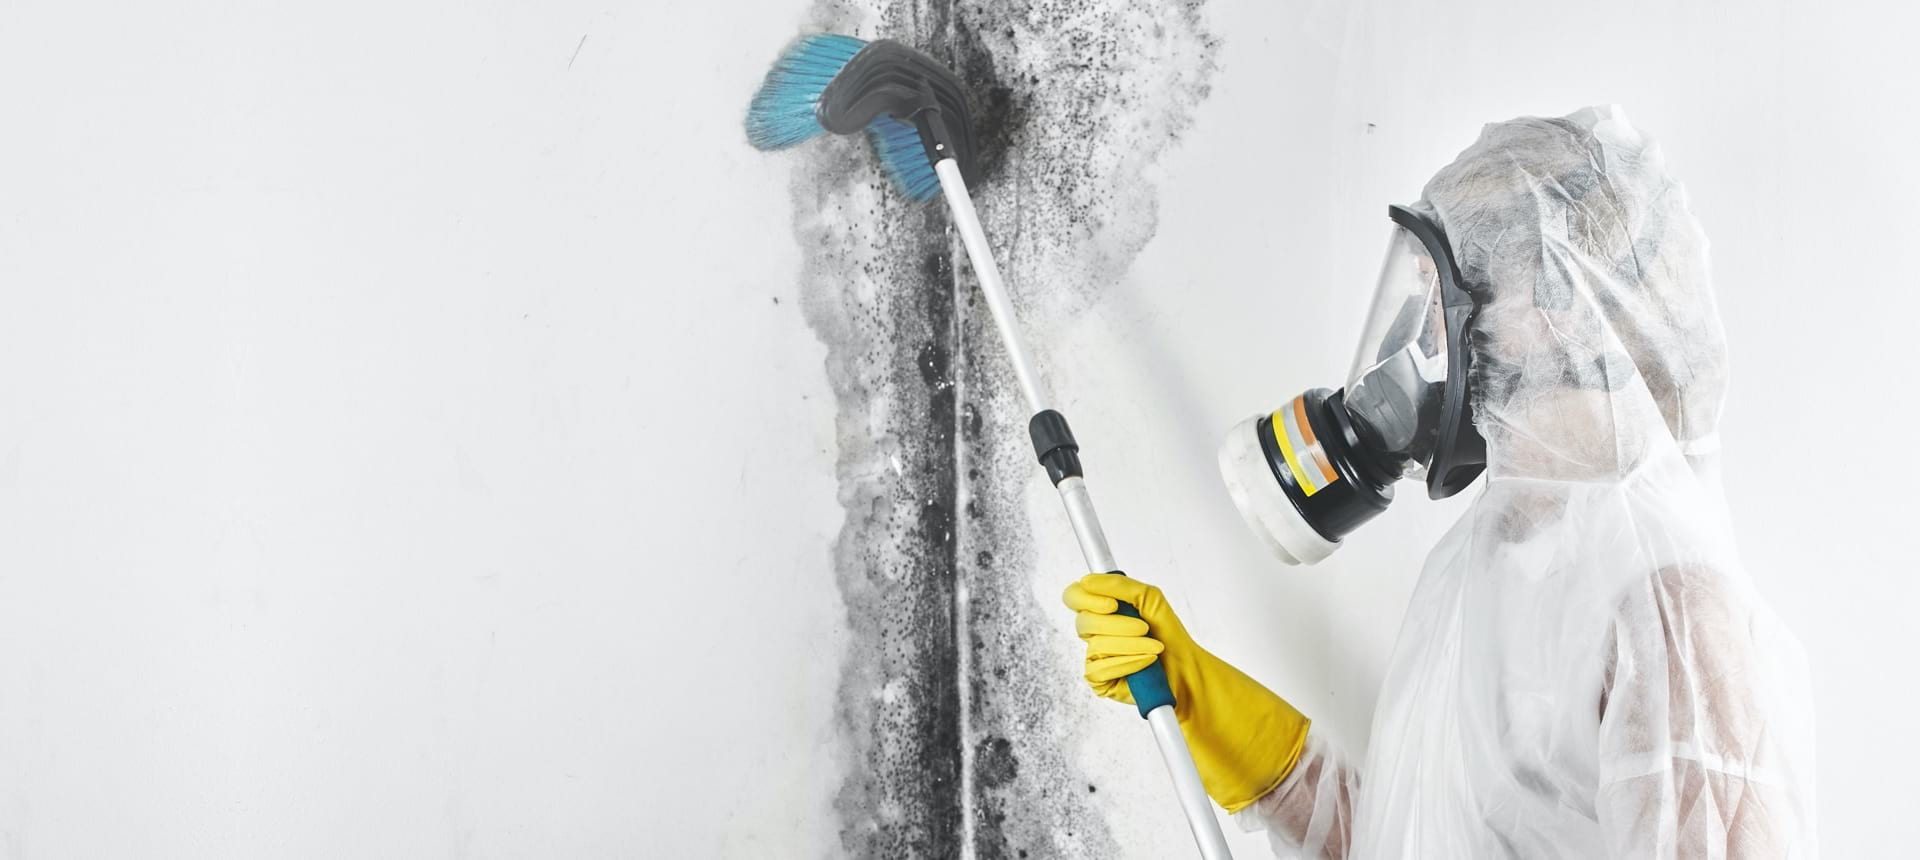 Professional mold removal and cleaning contractor